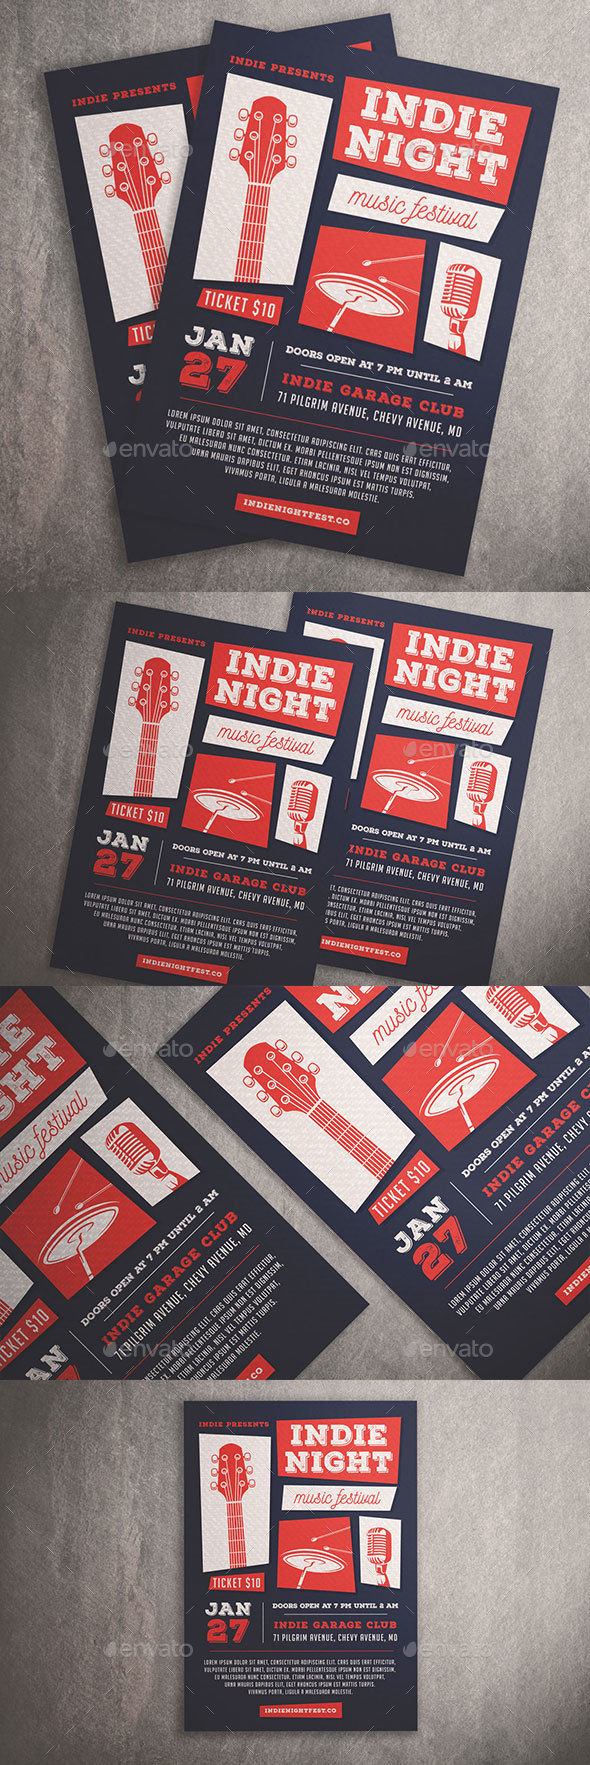 Indie Night Music Festival Flyer - Clubs & Parties Events